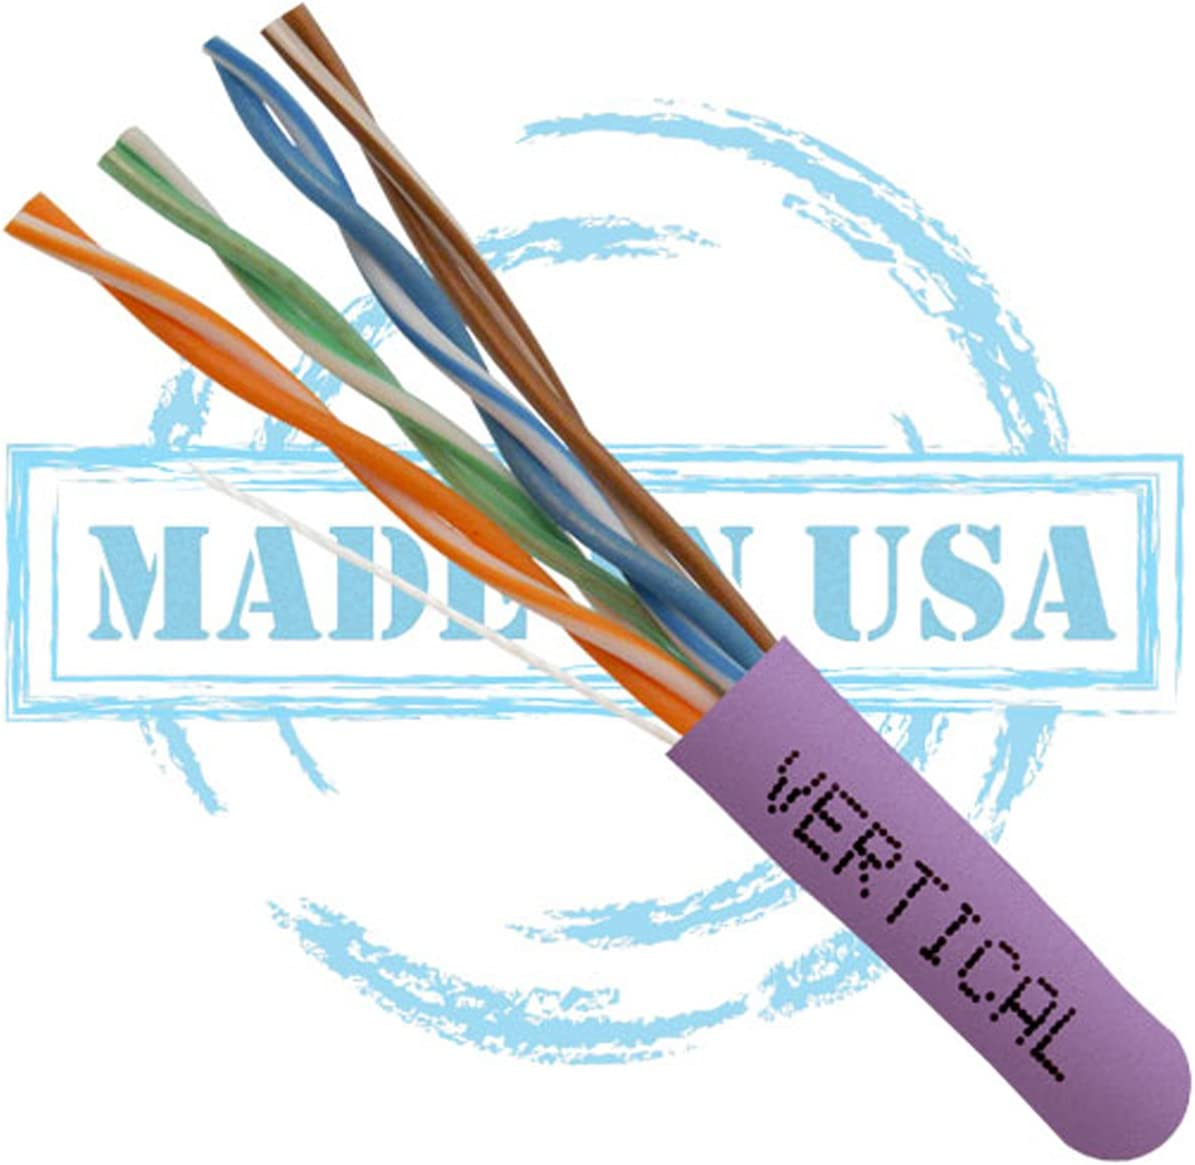 Vertical Cable CAT5E Plenum 24AWG 350 MHz 1000ft 8C Solid Bare Copper UTP Bulk Ethernet Cable Made in USA Purple